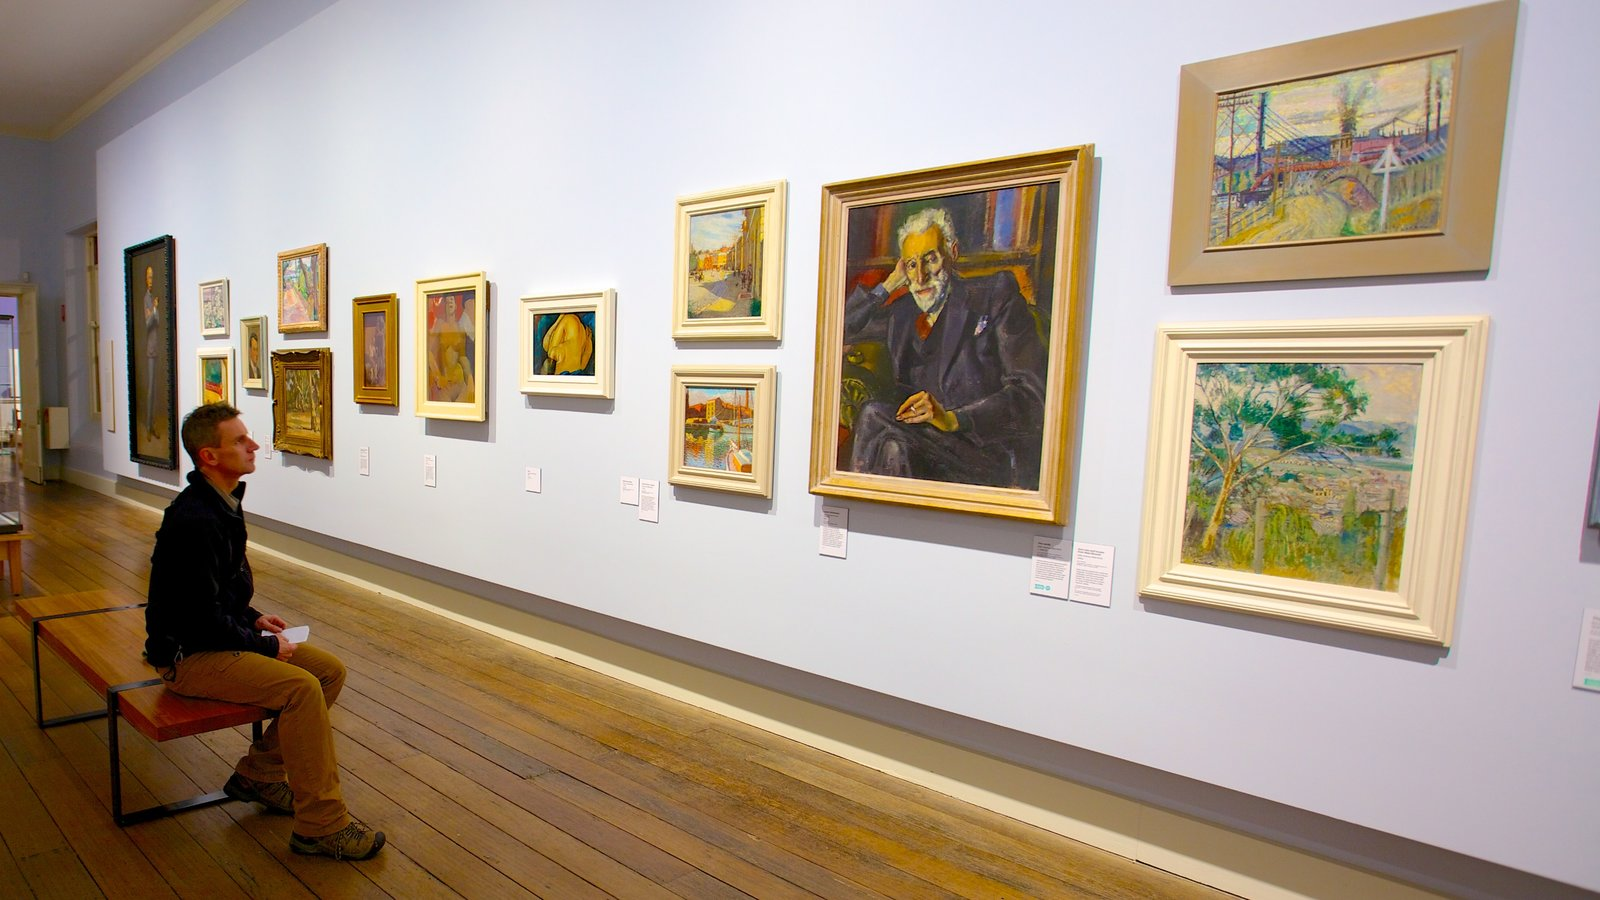 Tasmanian Museum and Art Gallery showing interior views and art as well as an individual male